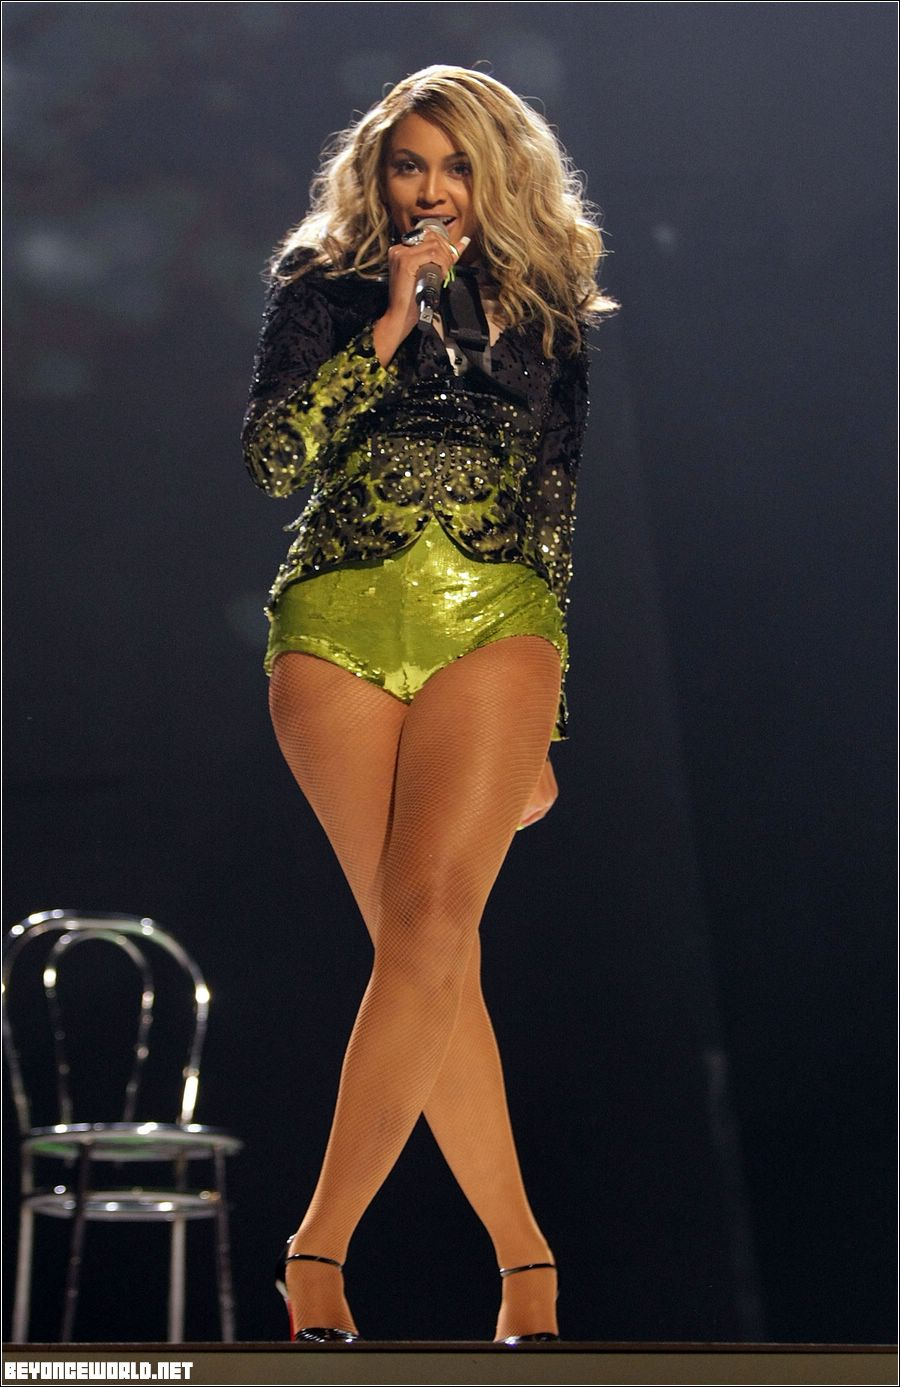 Casually found Beyonce sexy legs and thighs